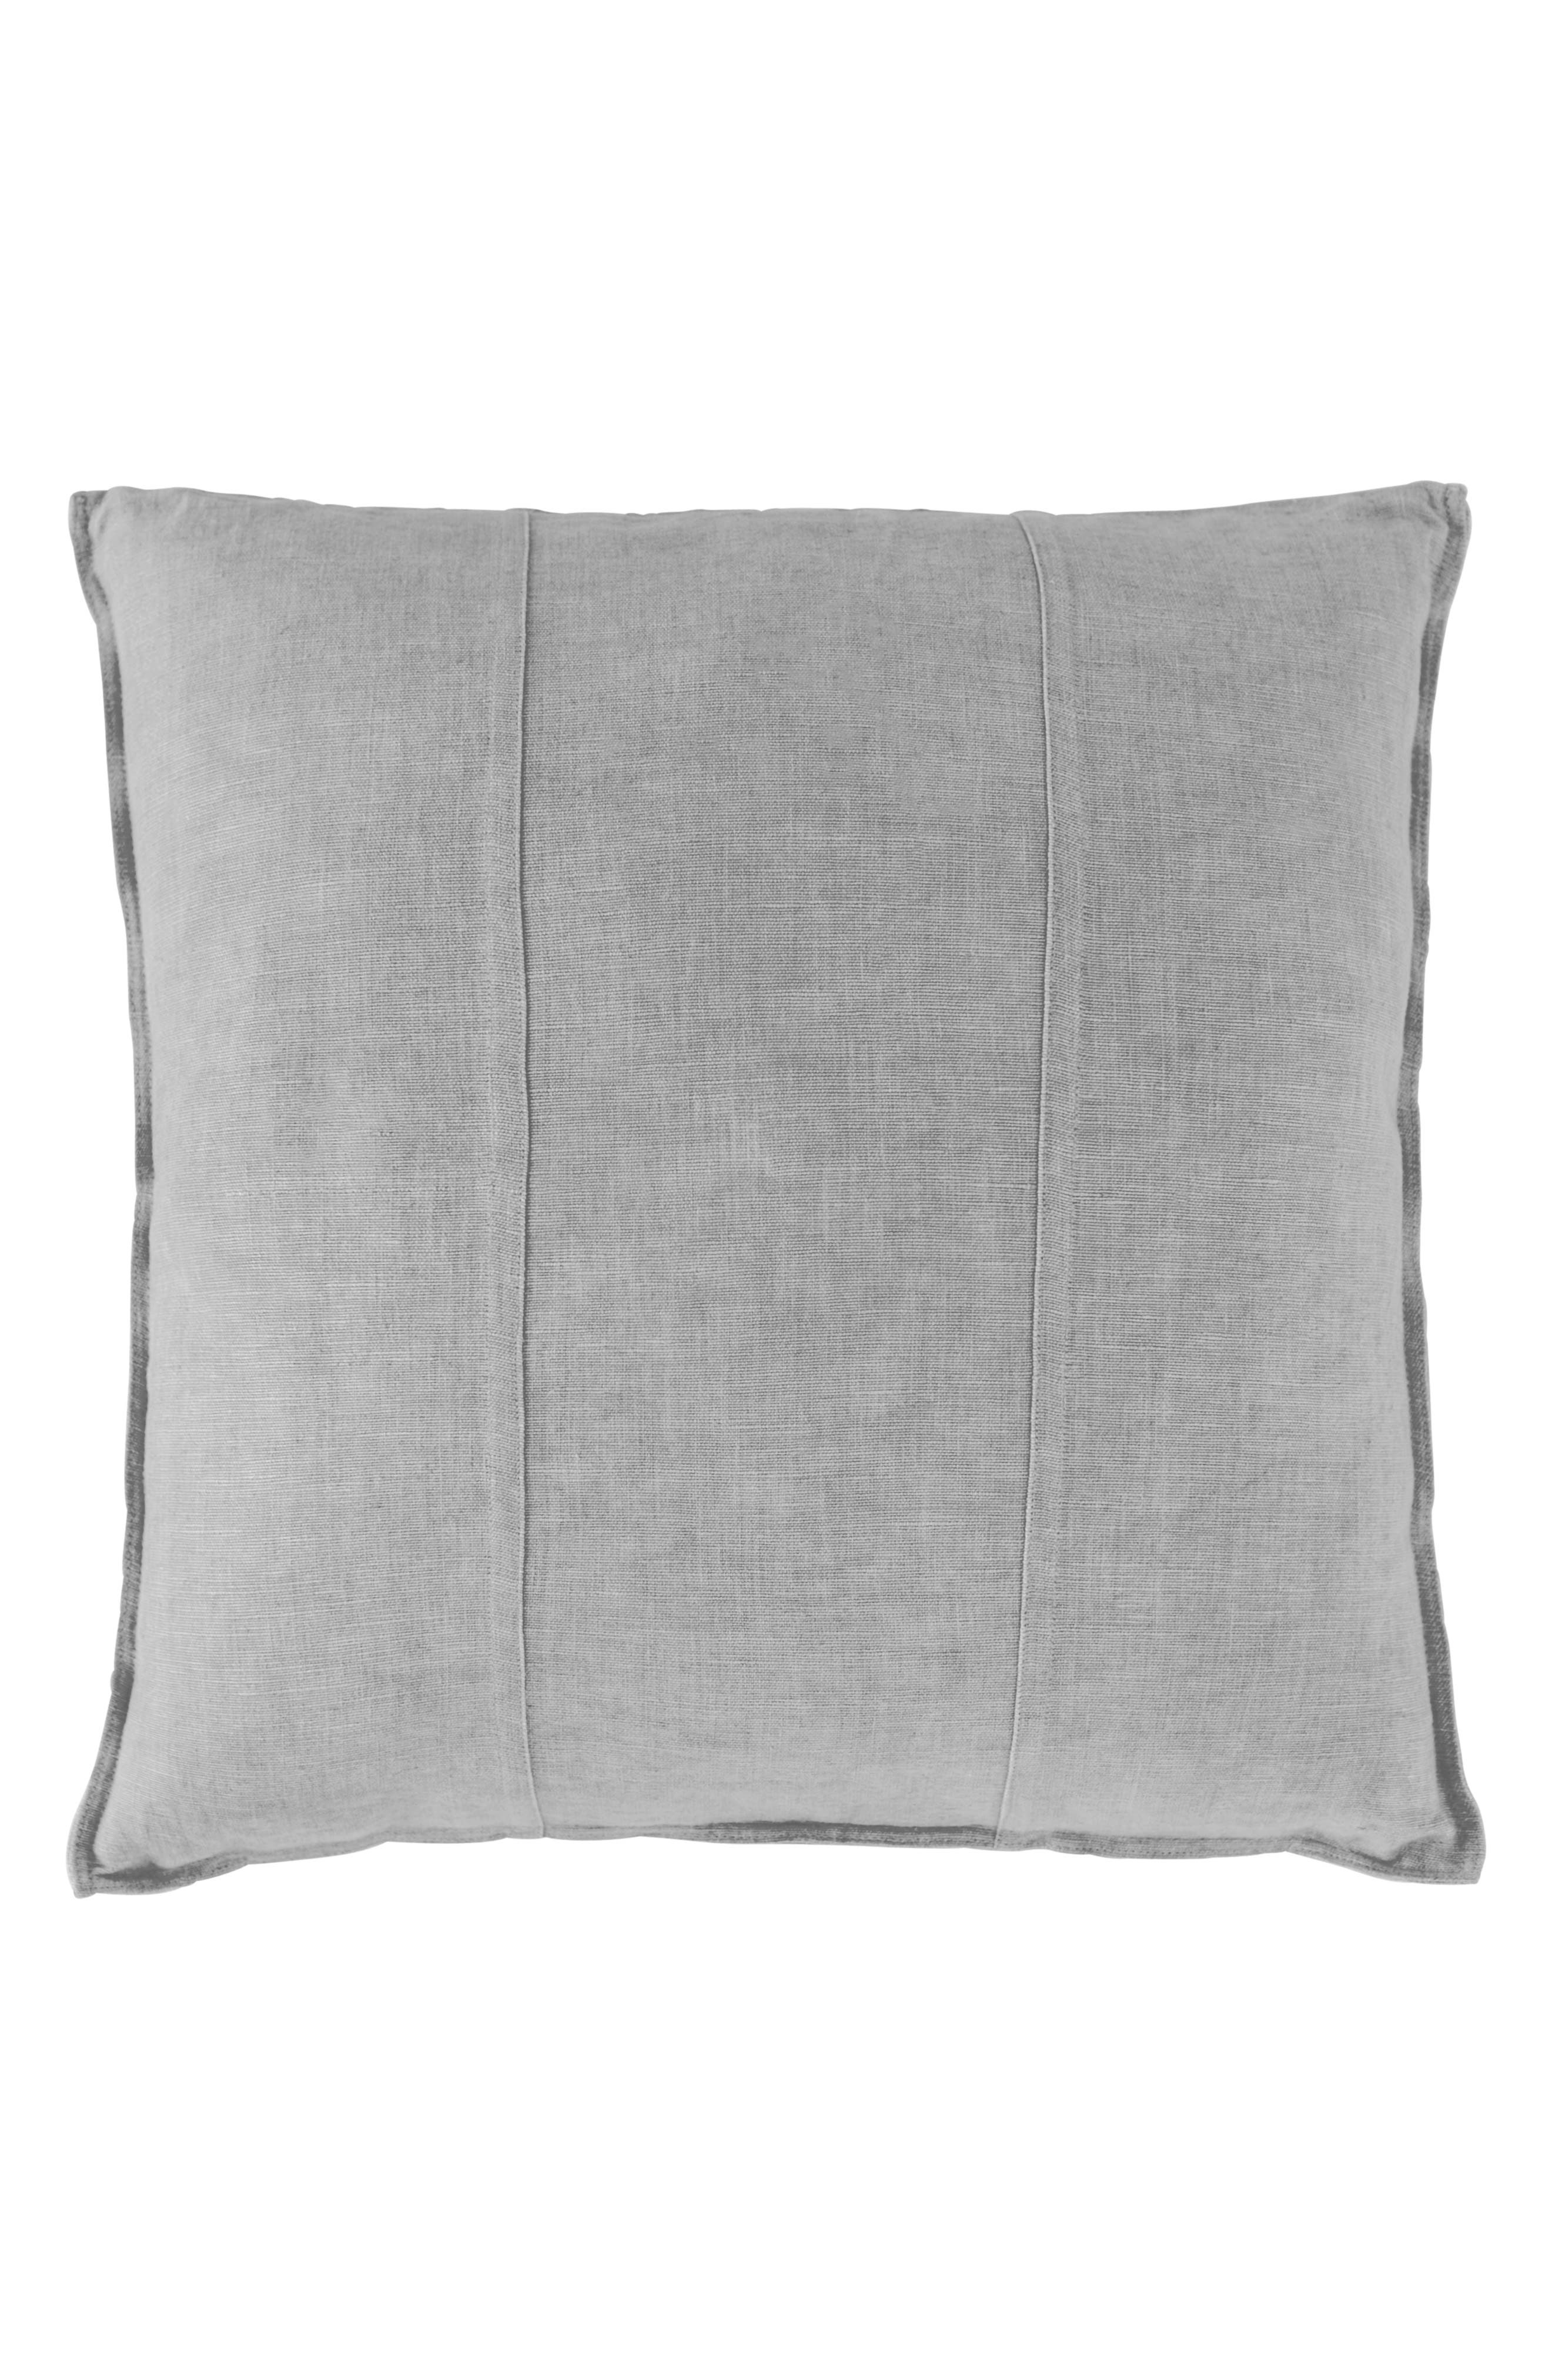 EADIE LIFESTYLE Luca Pre-Washed Linen Accent Pillow, Main, color, SILVER GREY